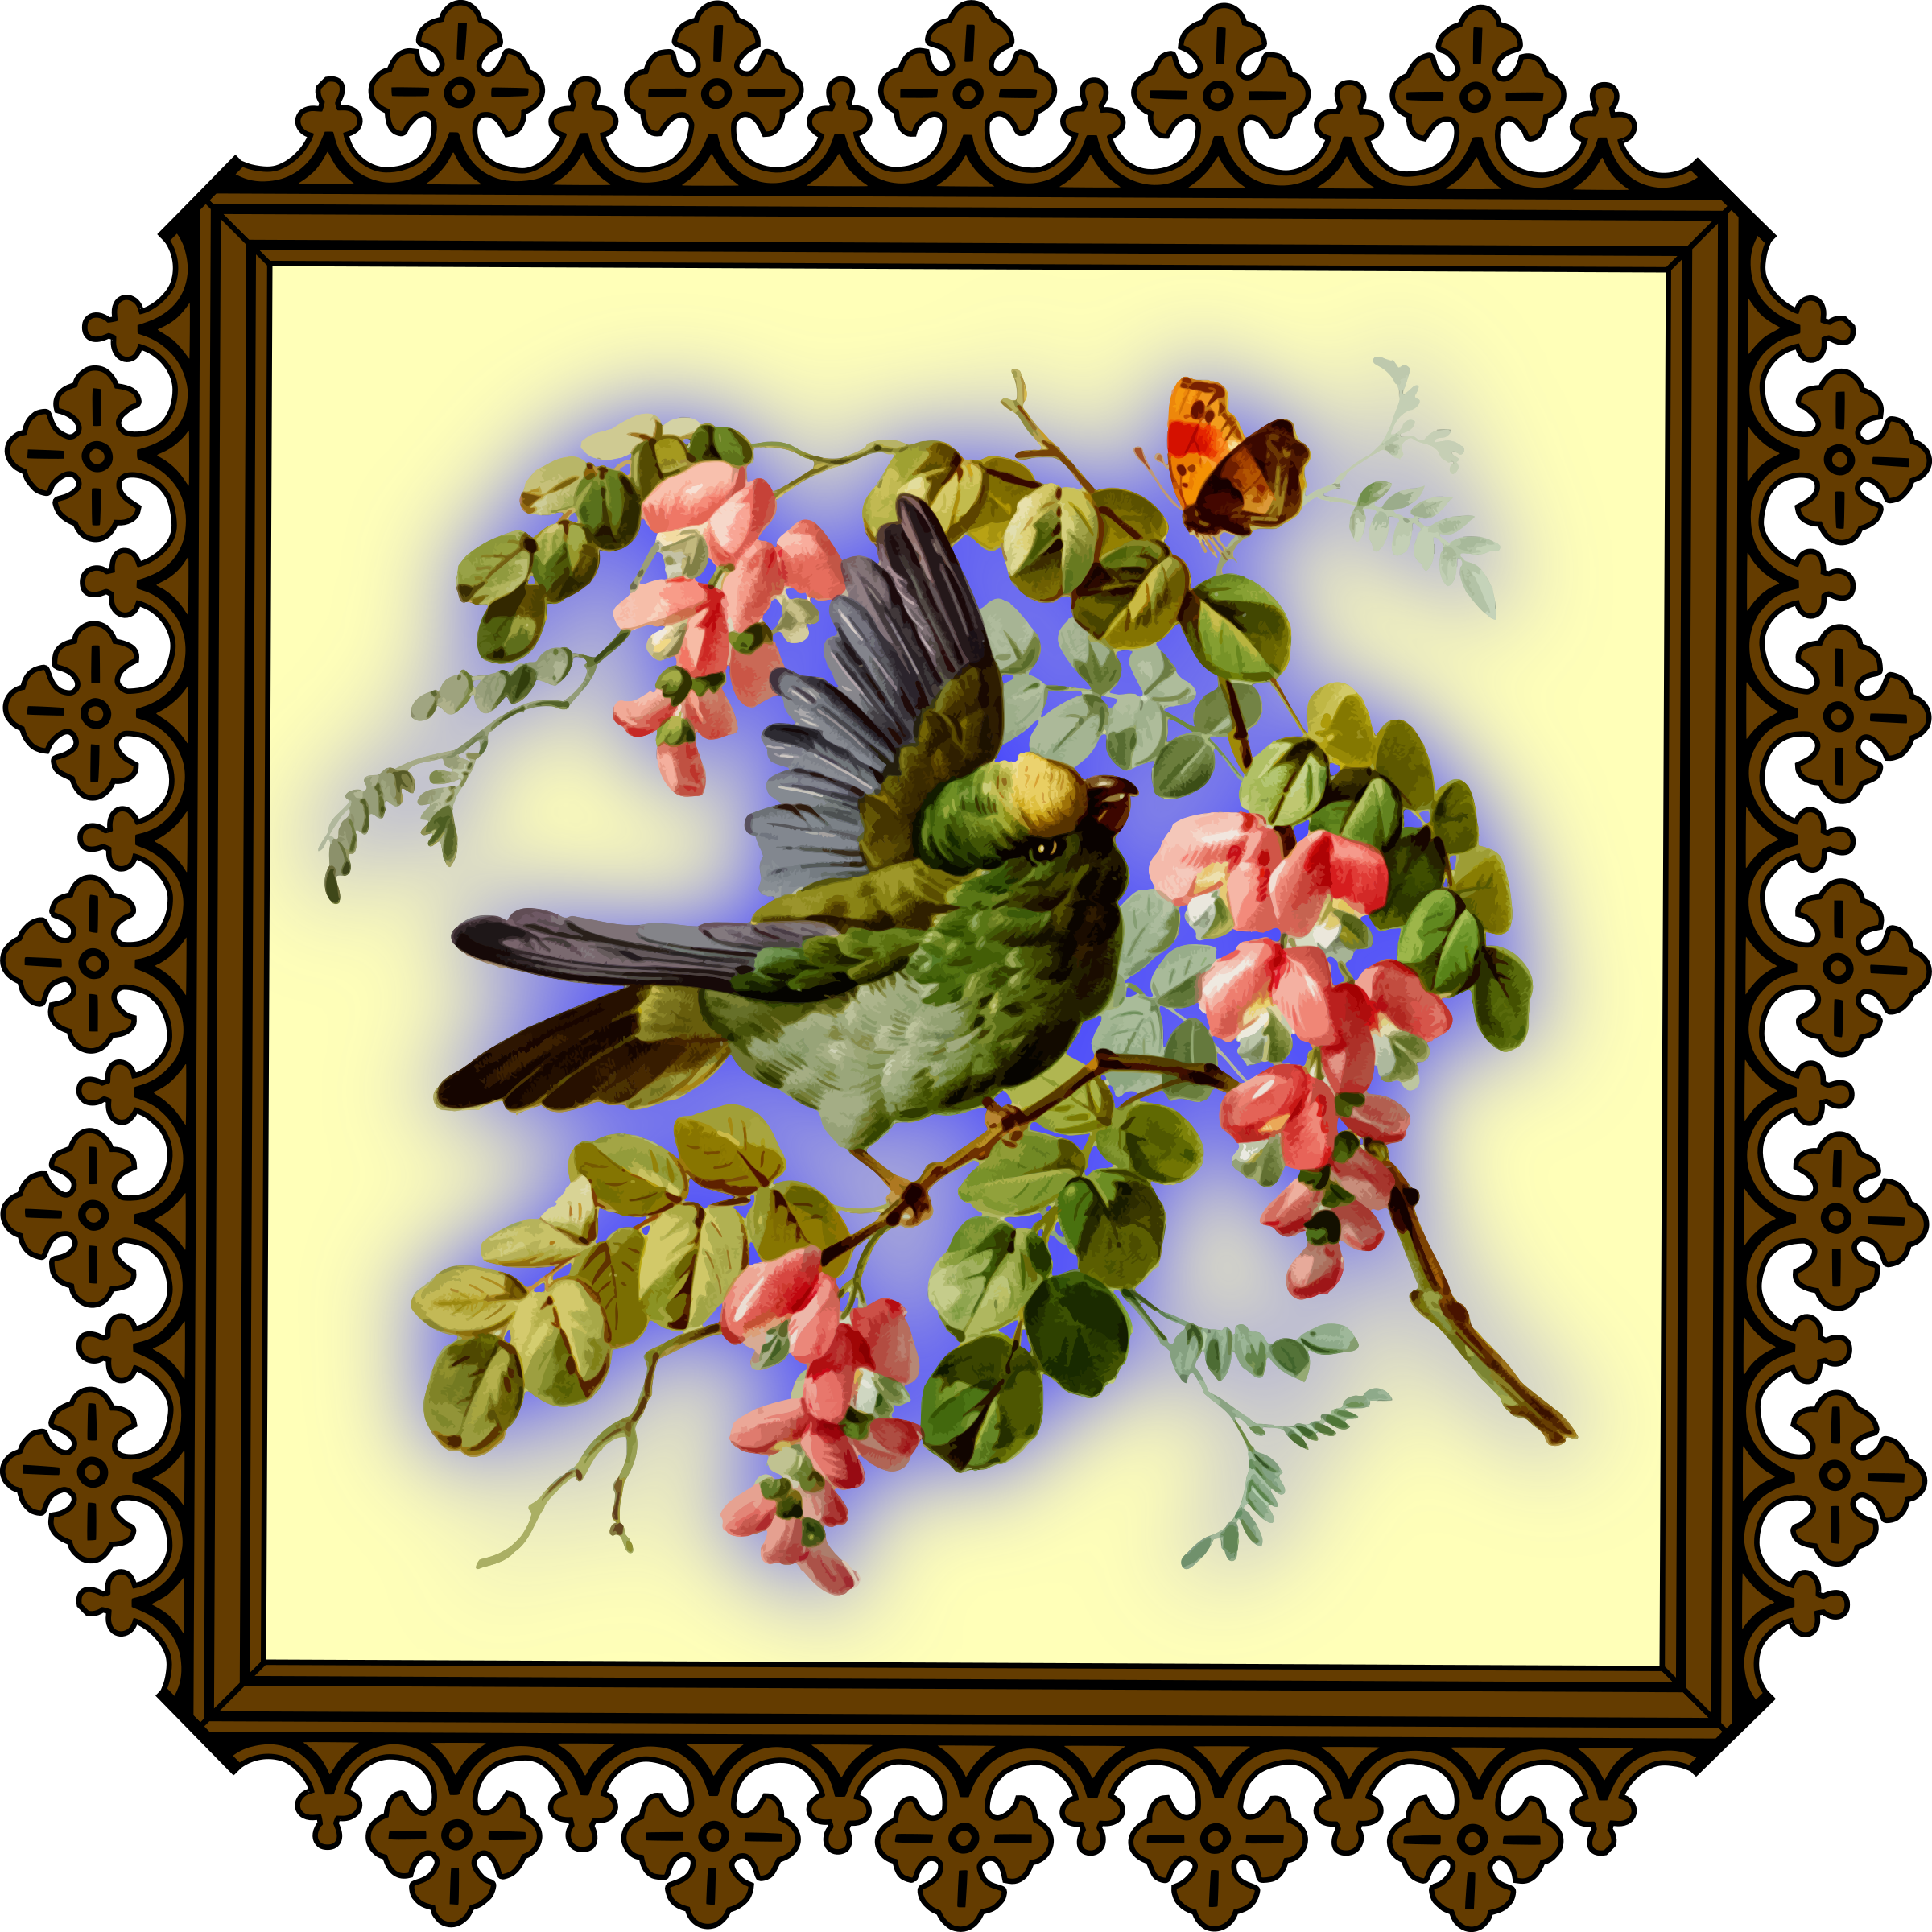 Bird and flowers by Firkin